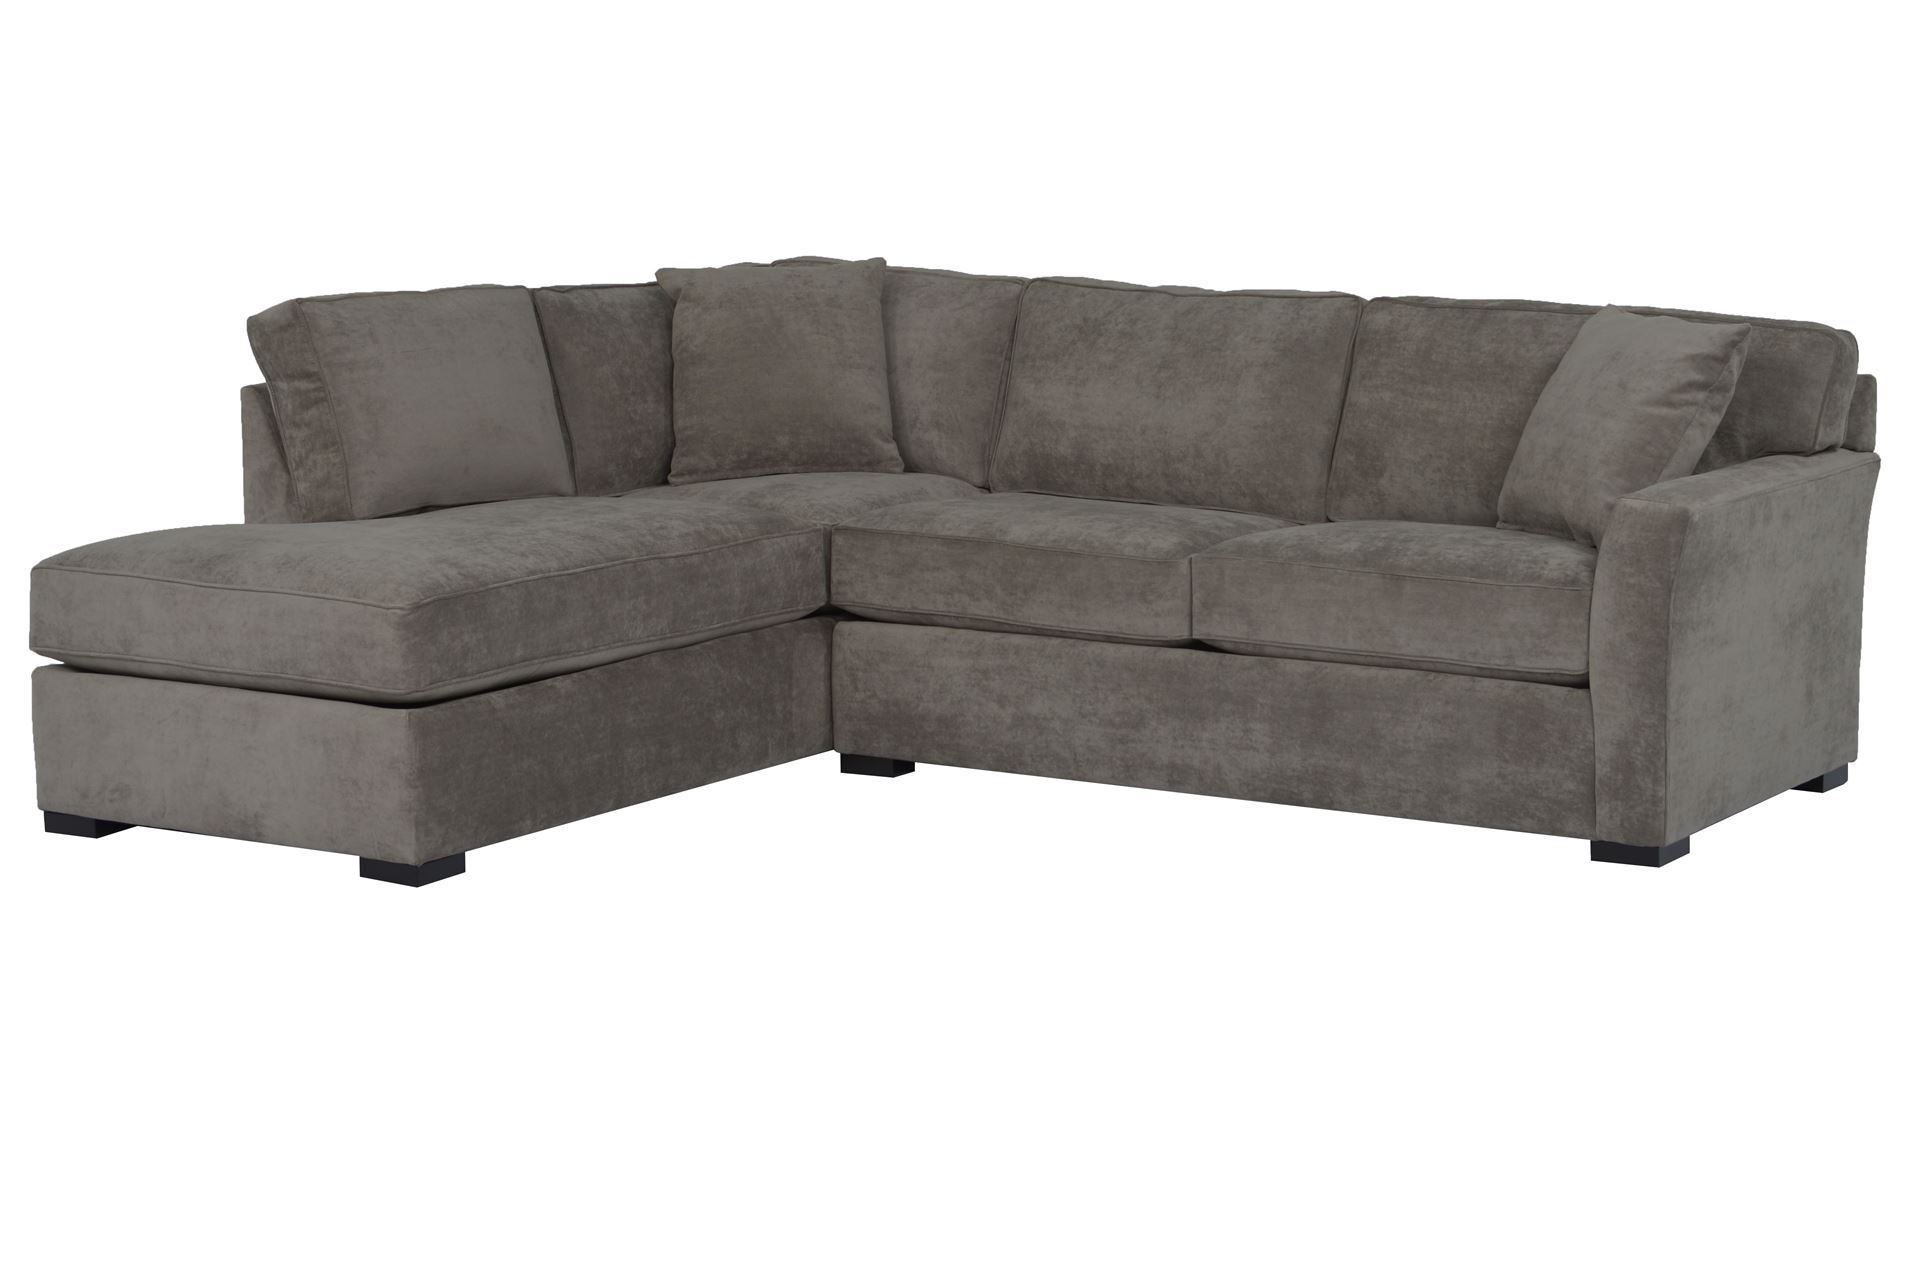 Aspen 2 Piece Sleeper Sectional W/laf Chaise | Living Room with Aspen 2 Piece Sectionals With Laf Chaise (Image 7 of 30)